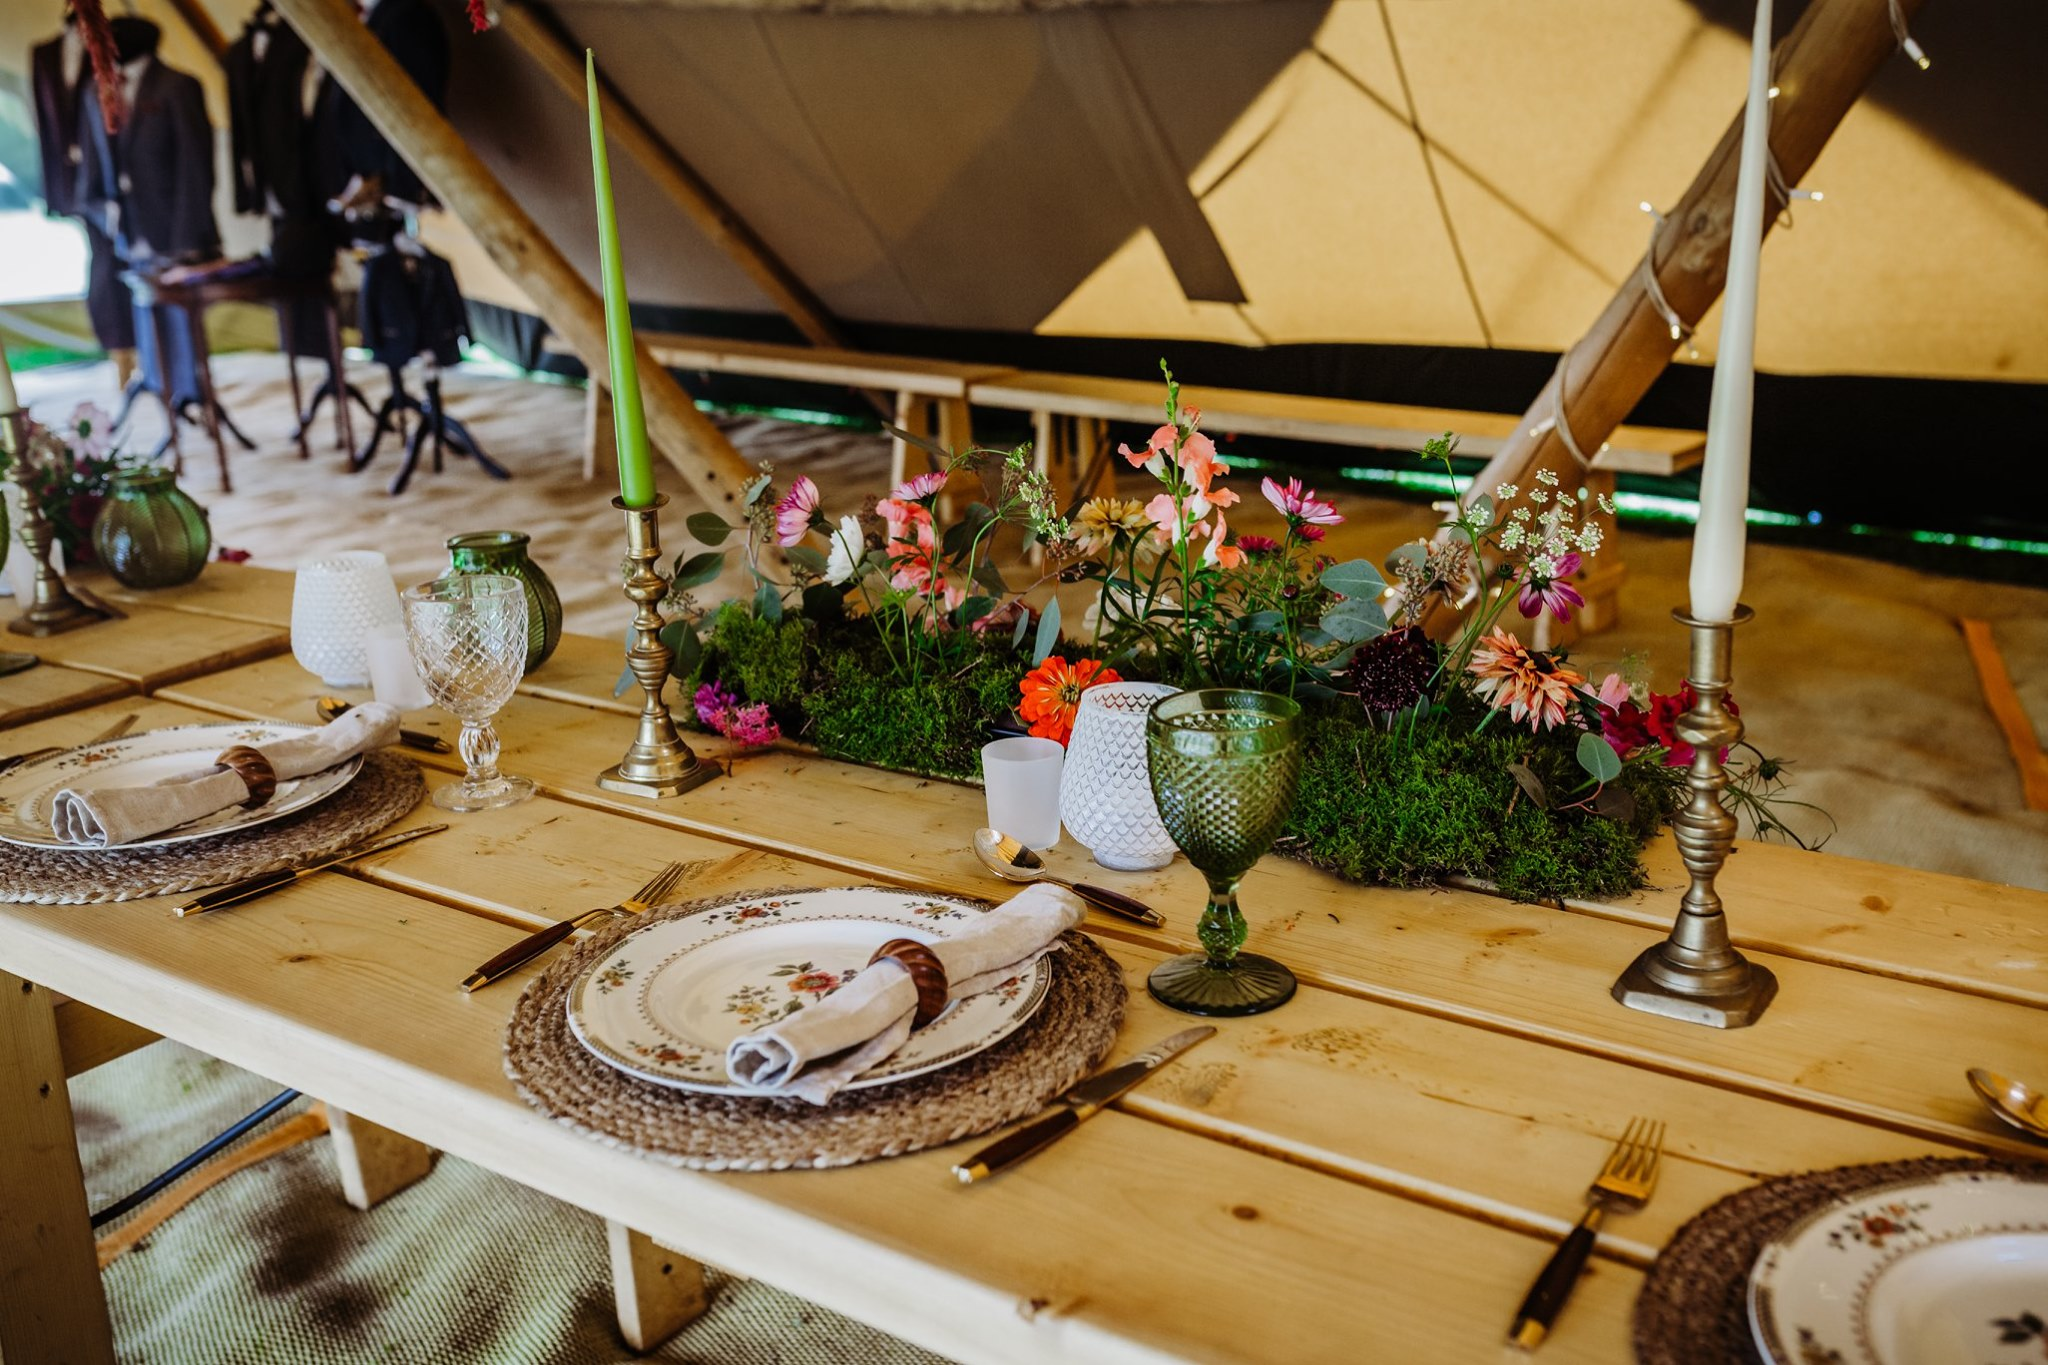 Tipi wedding rustic table setting inspiration with wooden napkin holders, charming floral plates, glassware and candlesticks by Sally's Secrets prop hire